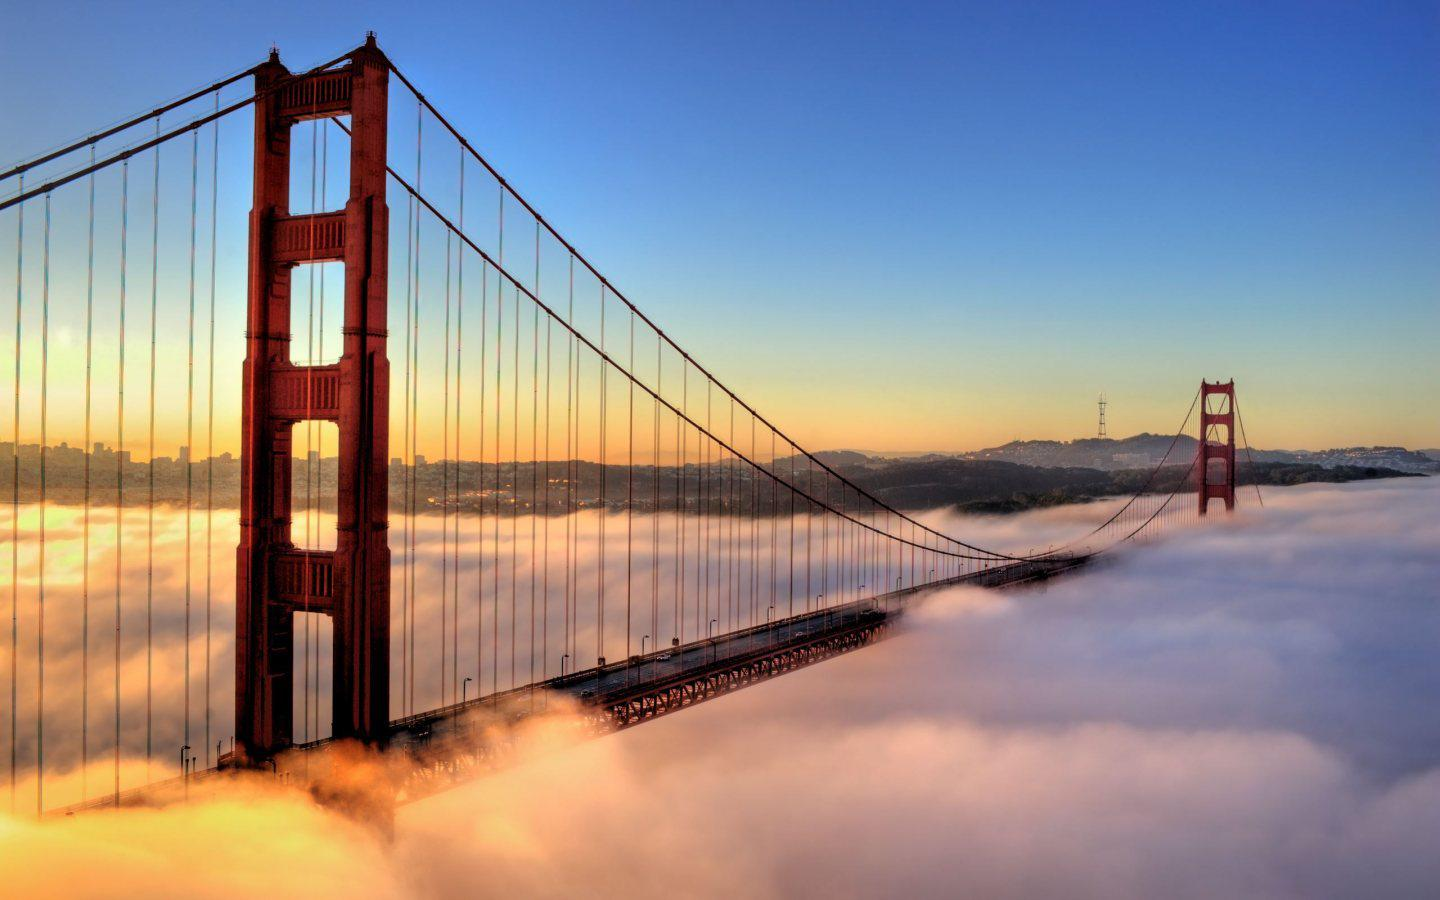 Golden Gate from San Francisco HD Wallpaper Slwallpapers 1440x900